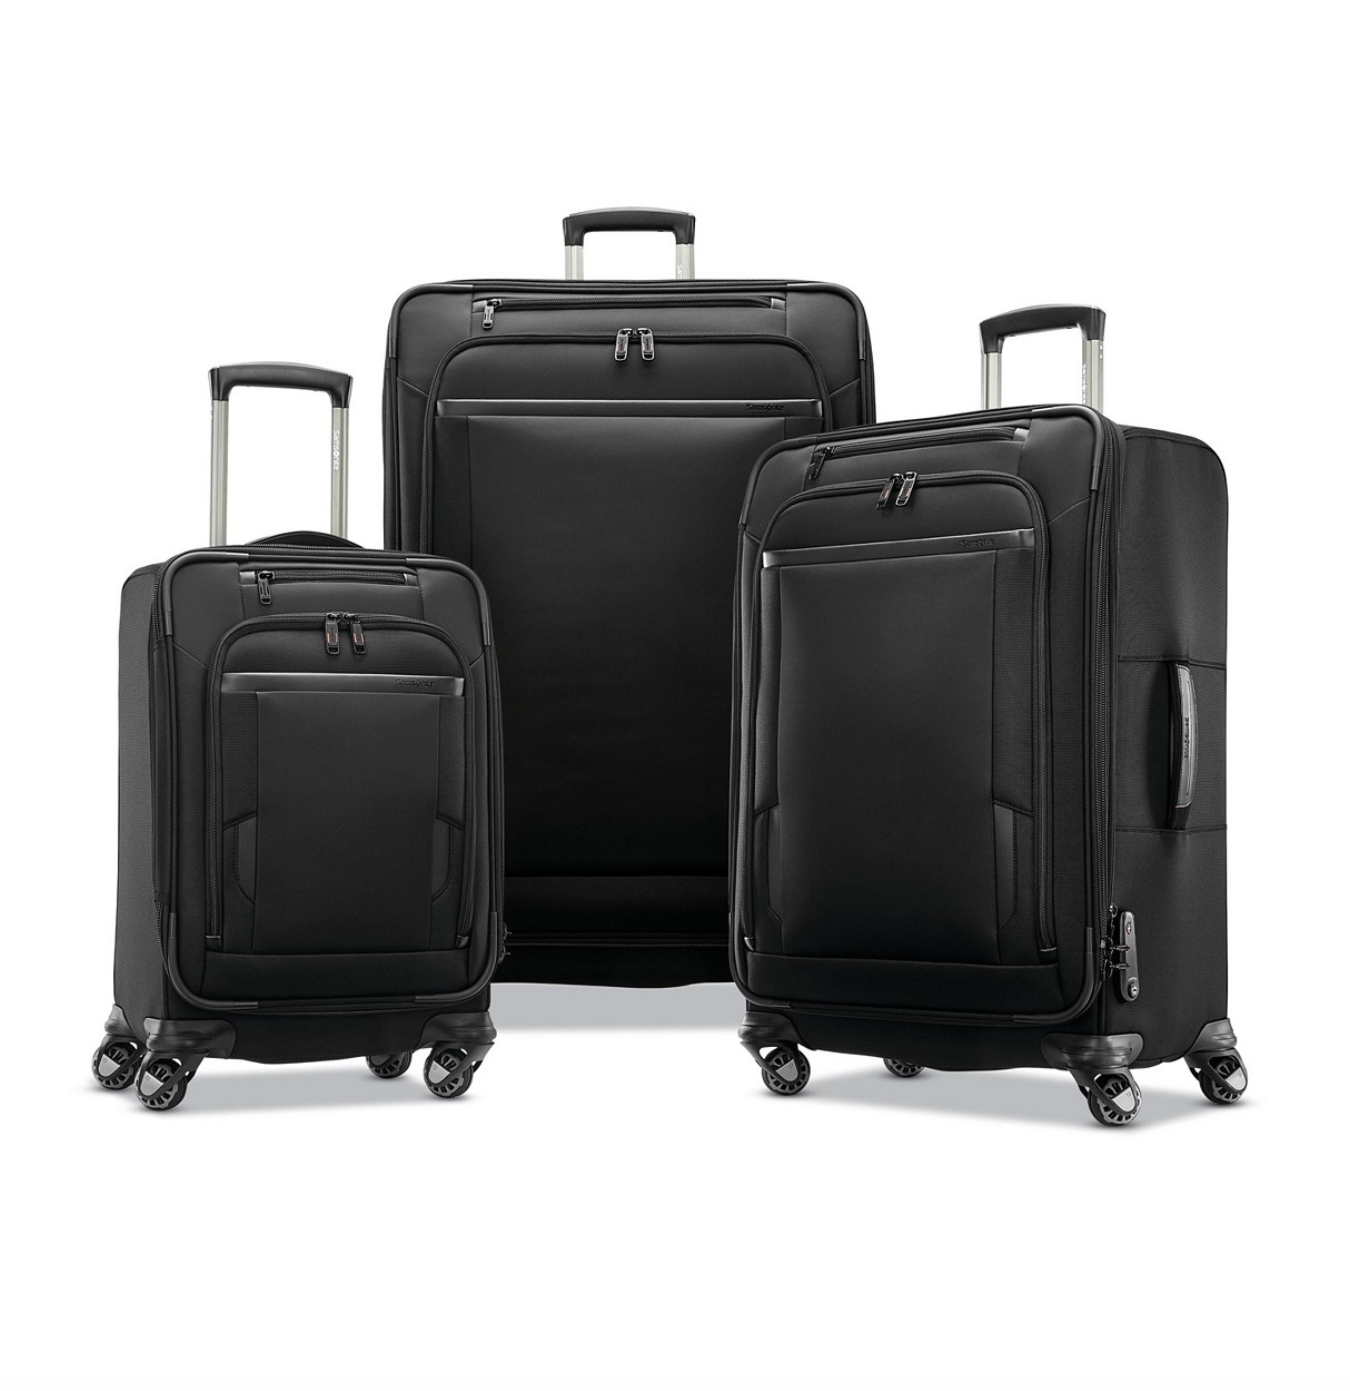 Samsonite Pro Travel Softside Luggage Set